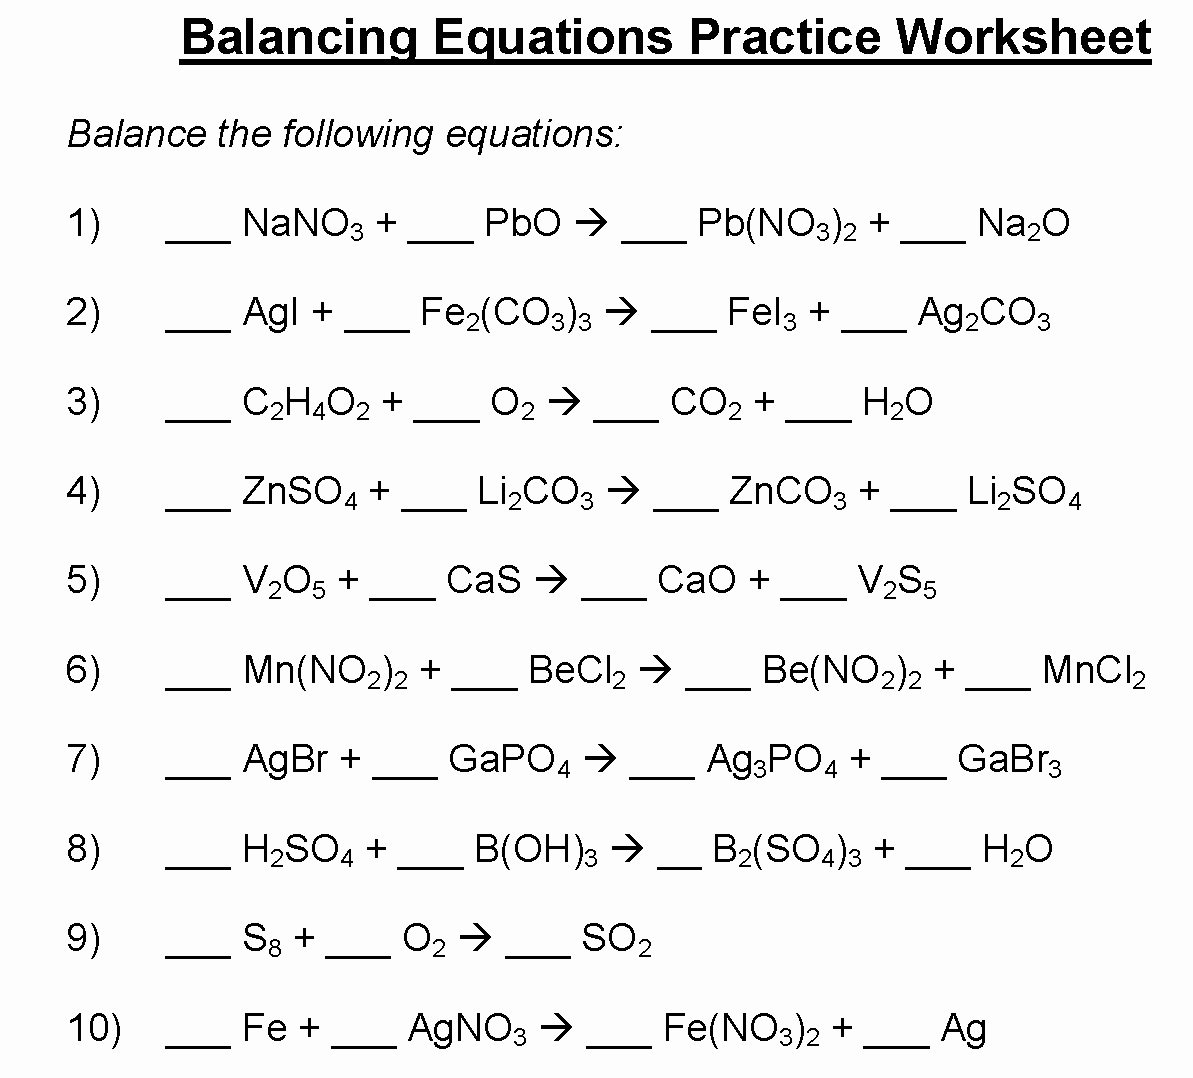 49 Balancing Equations Practice Worksheet Answers